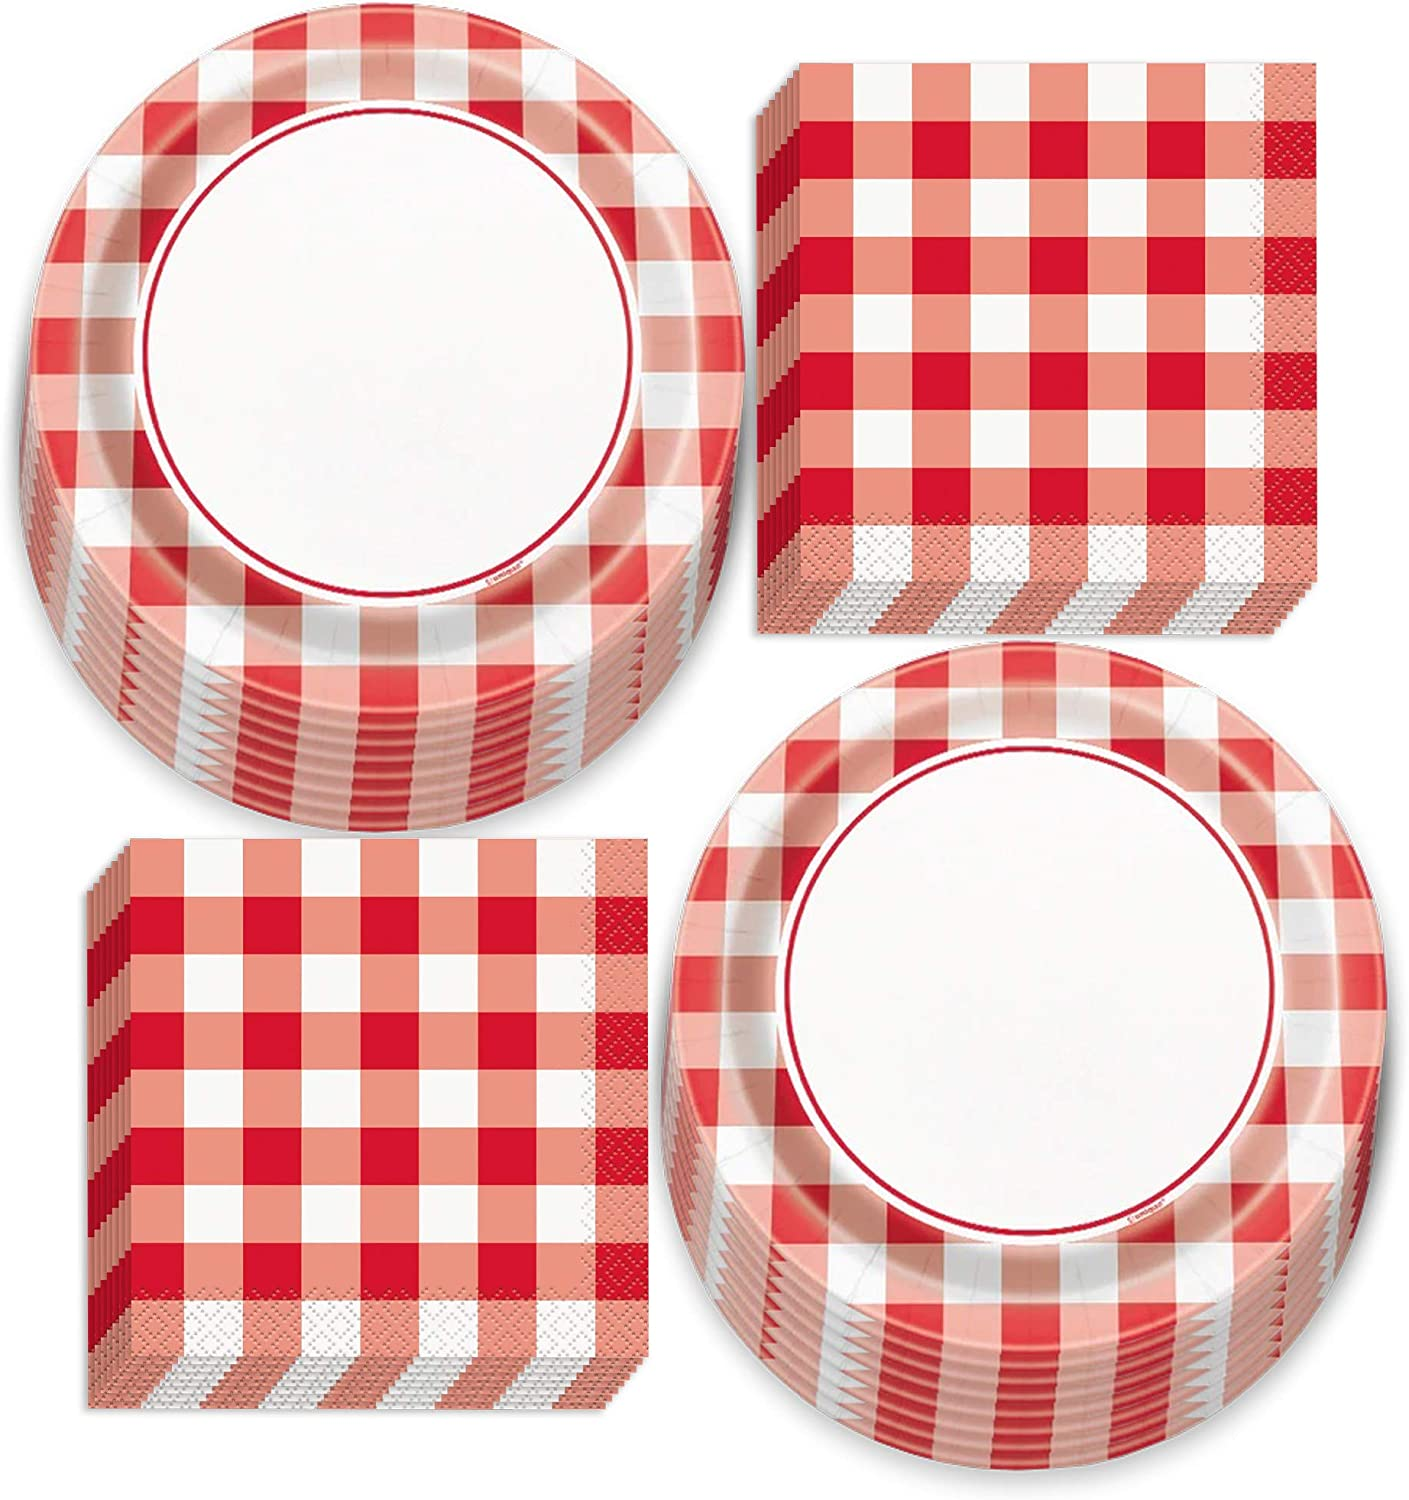 Red and White Checkered Gingham Picnic Party Paper Dessert Plates and Beverage Napkins (Serves 16)